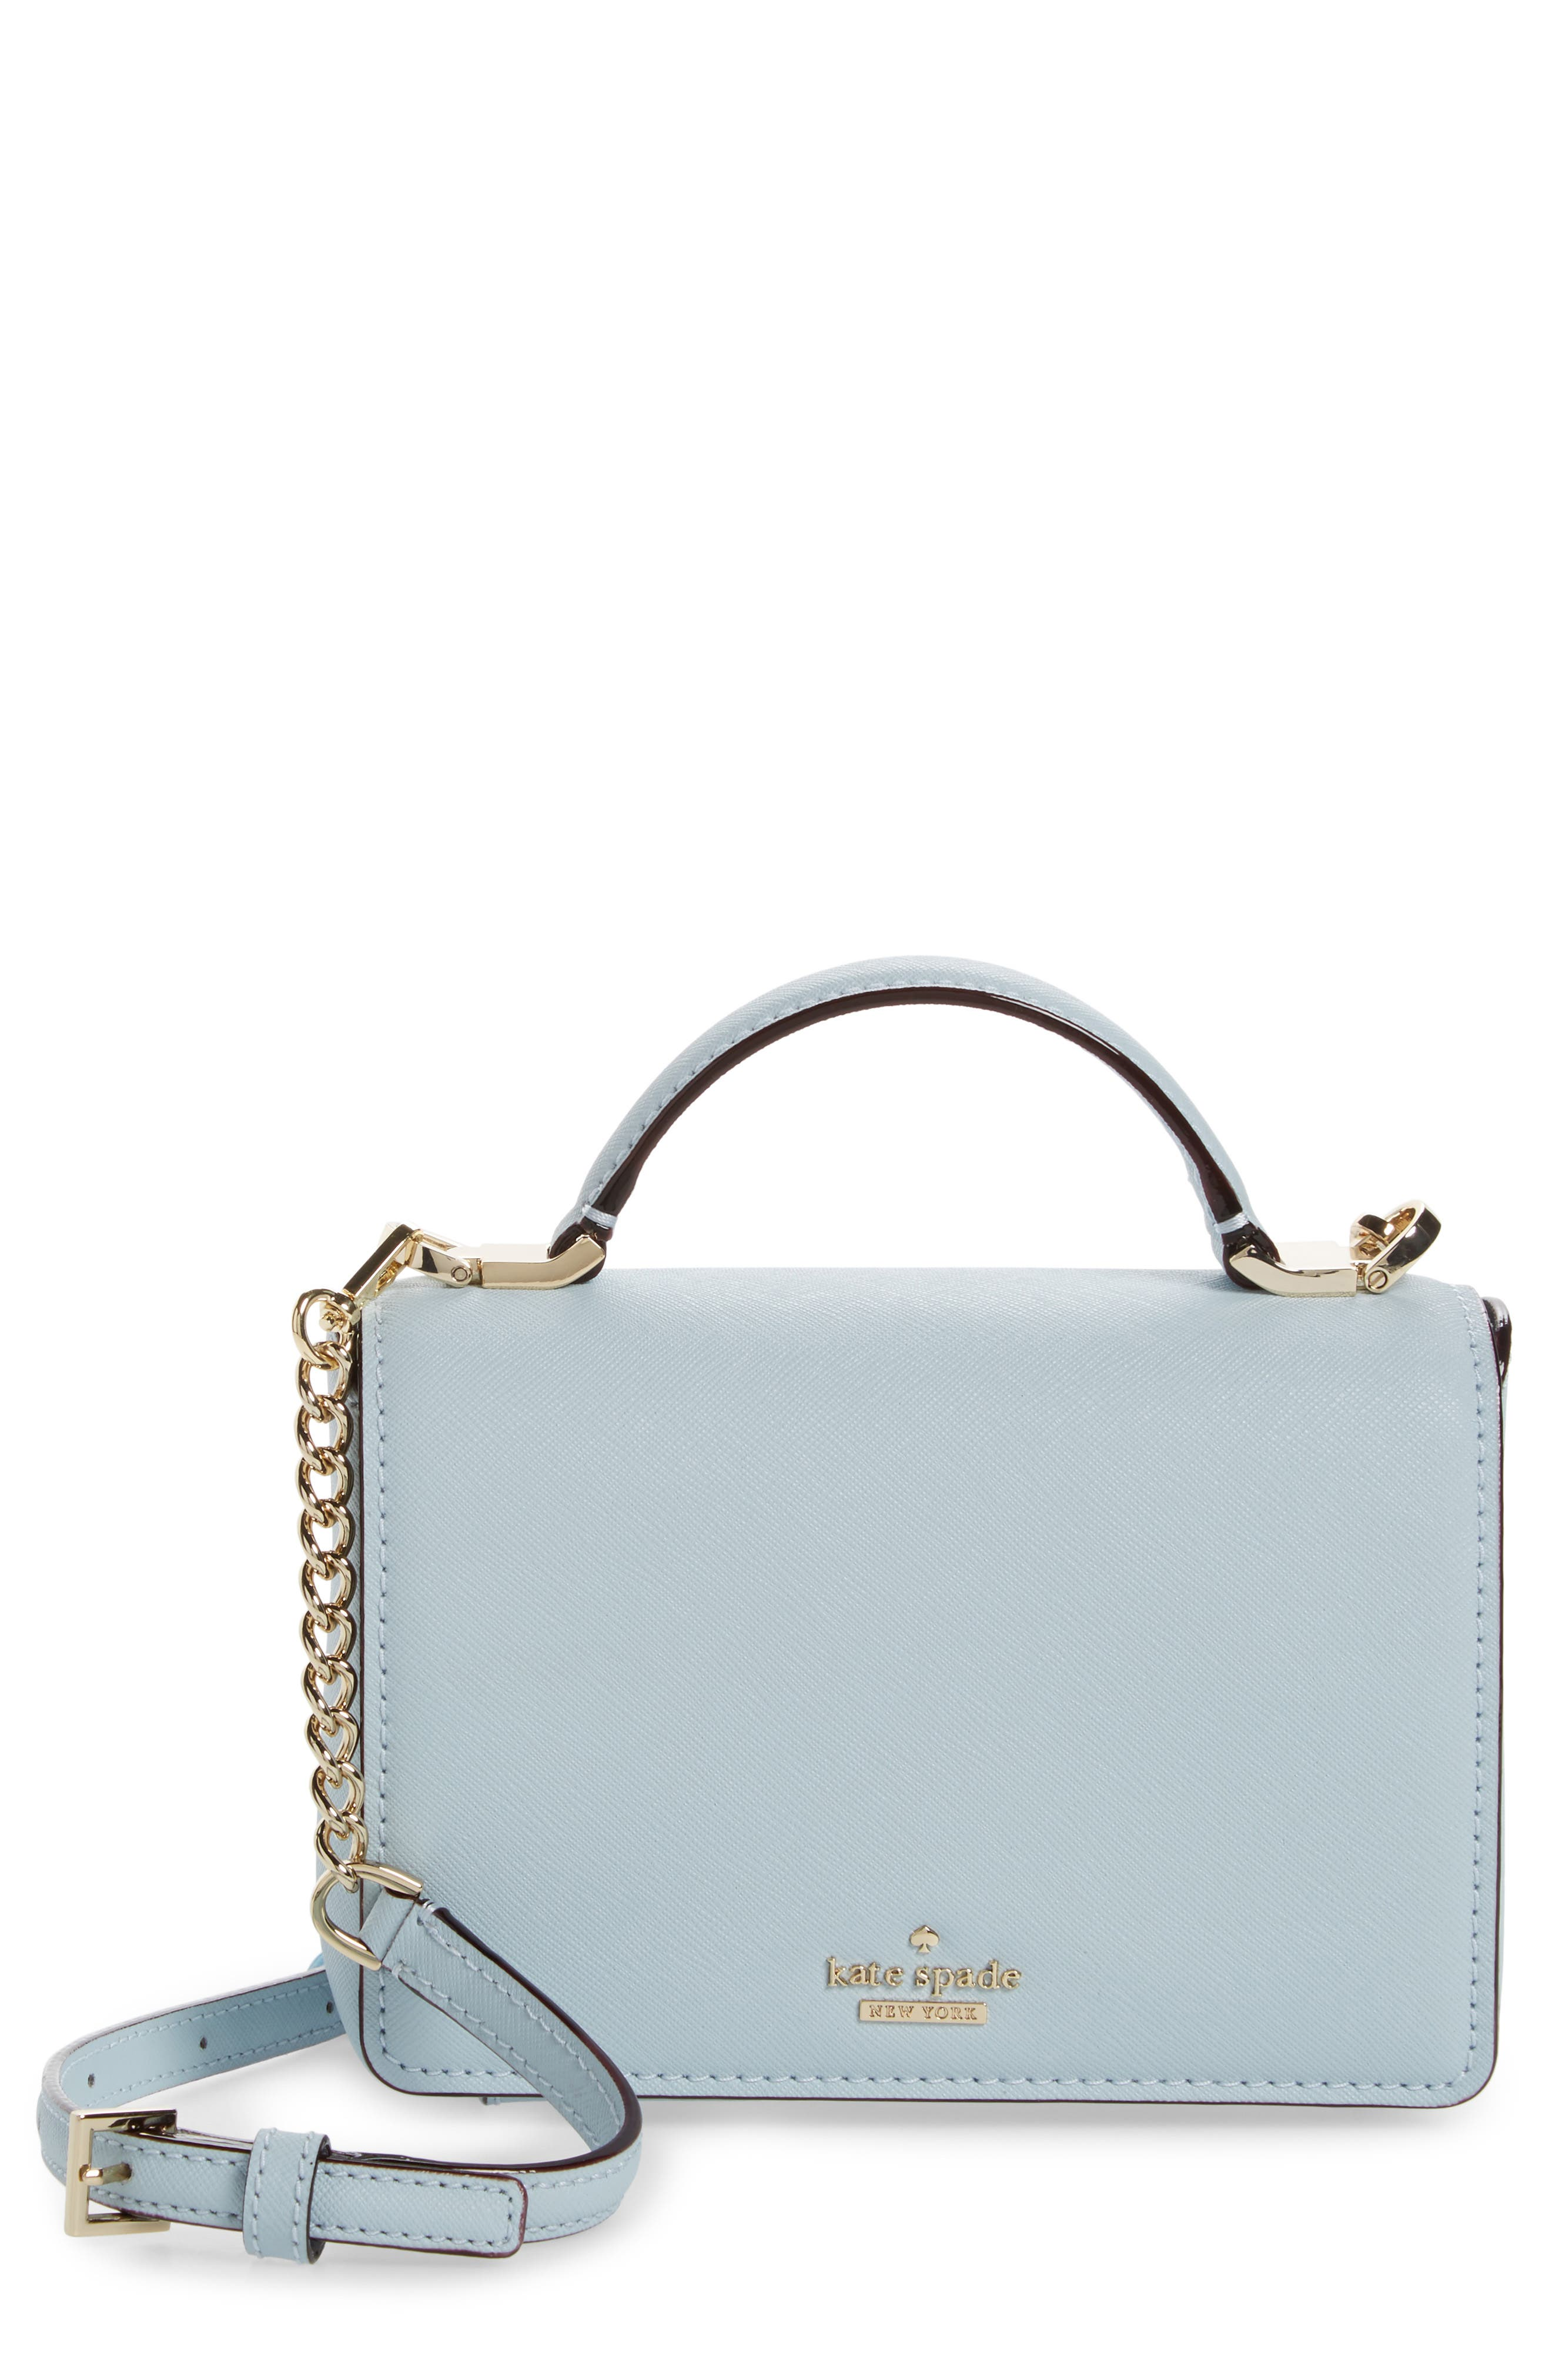 kate spade new york cameron street - hope saffiano leather crossbody bag